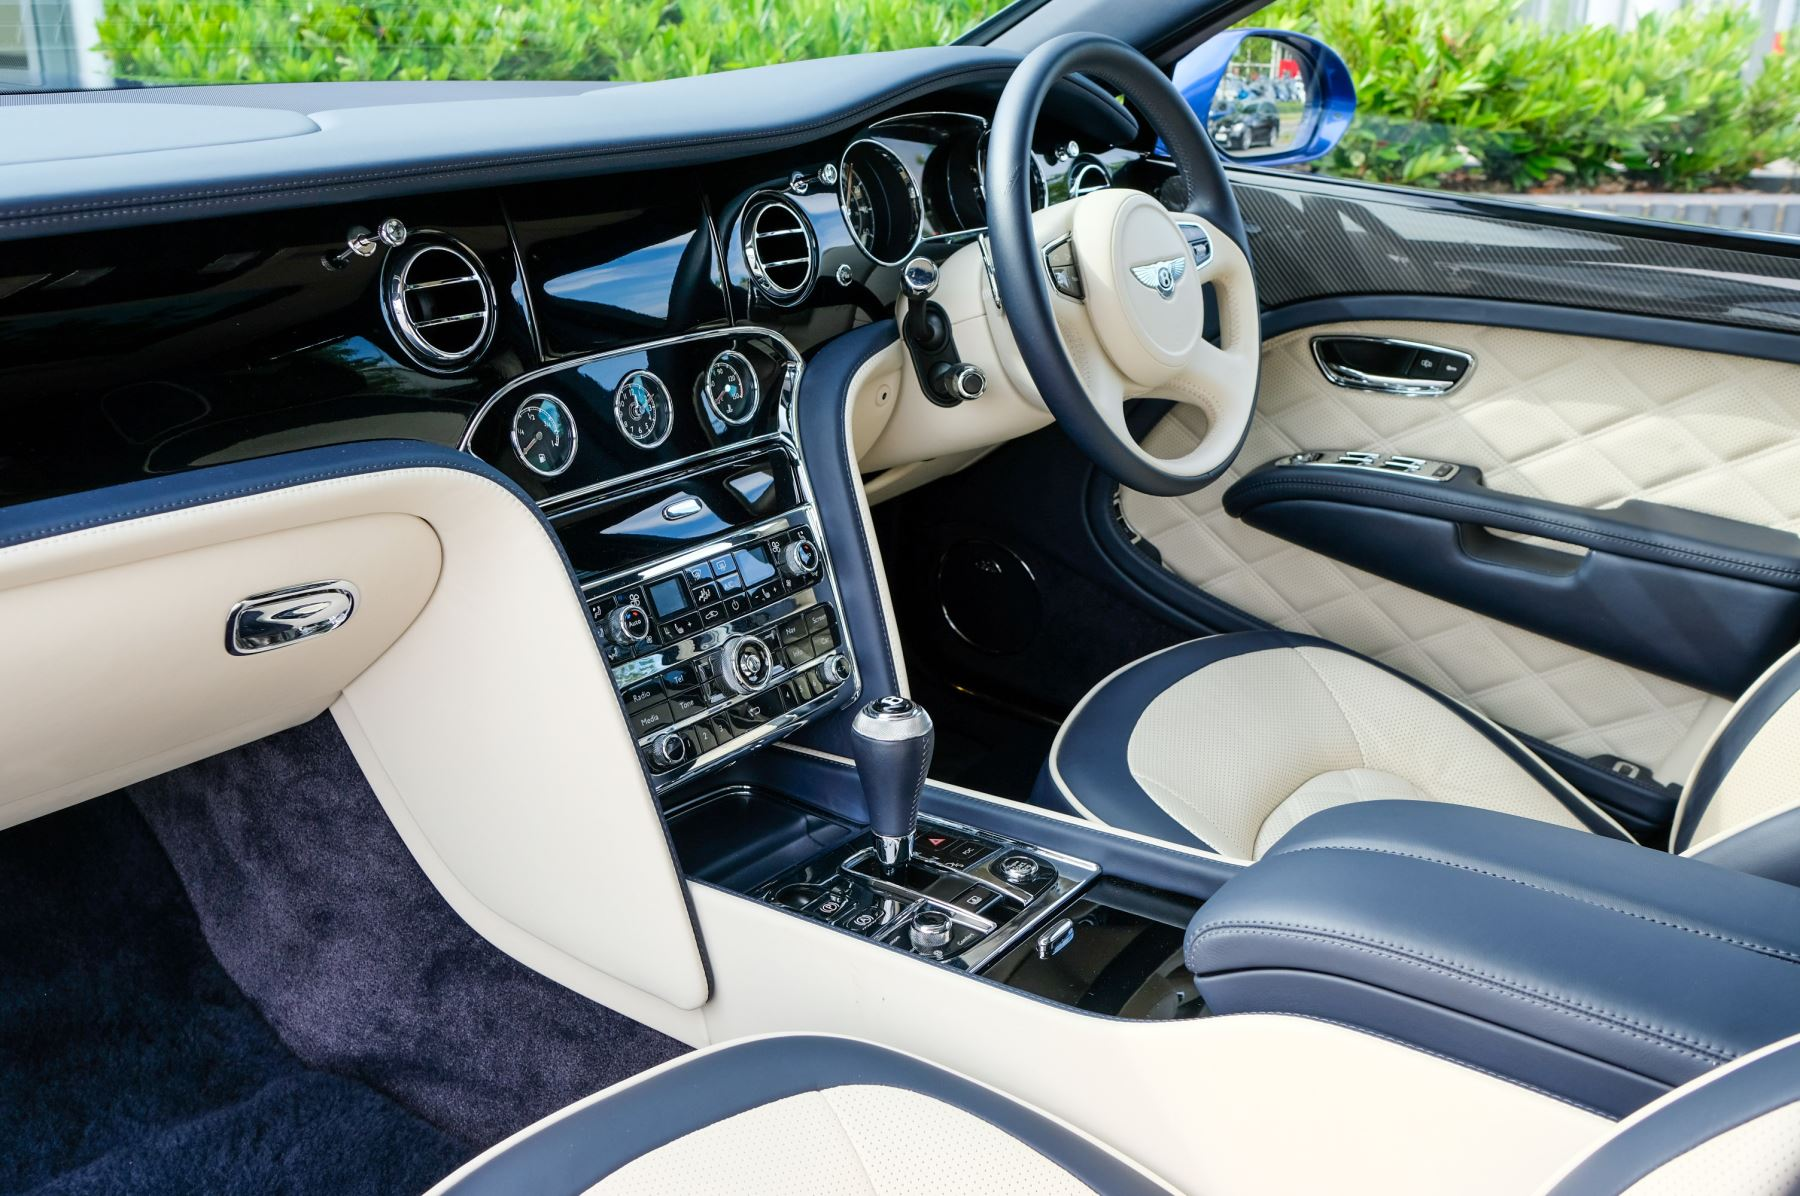 Bentley Mulsanne Speed 6.8 V8 Speed - Speed Premier and Entertainment Specification image 11